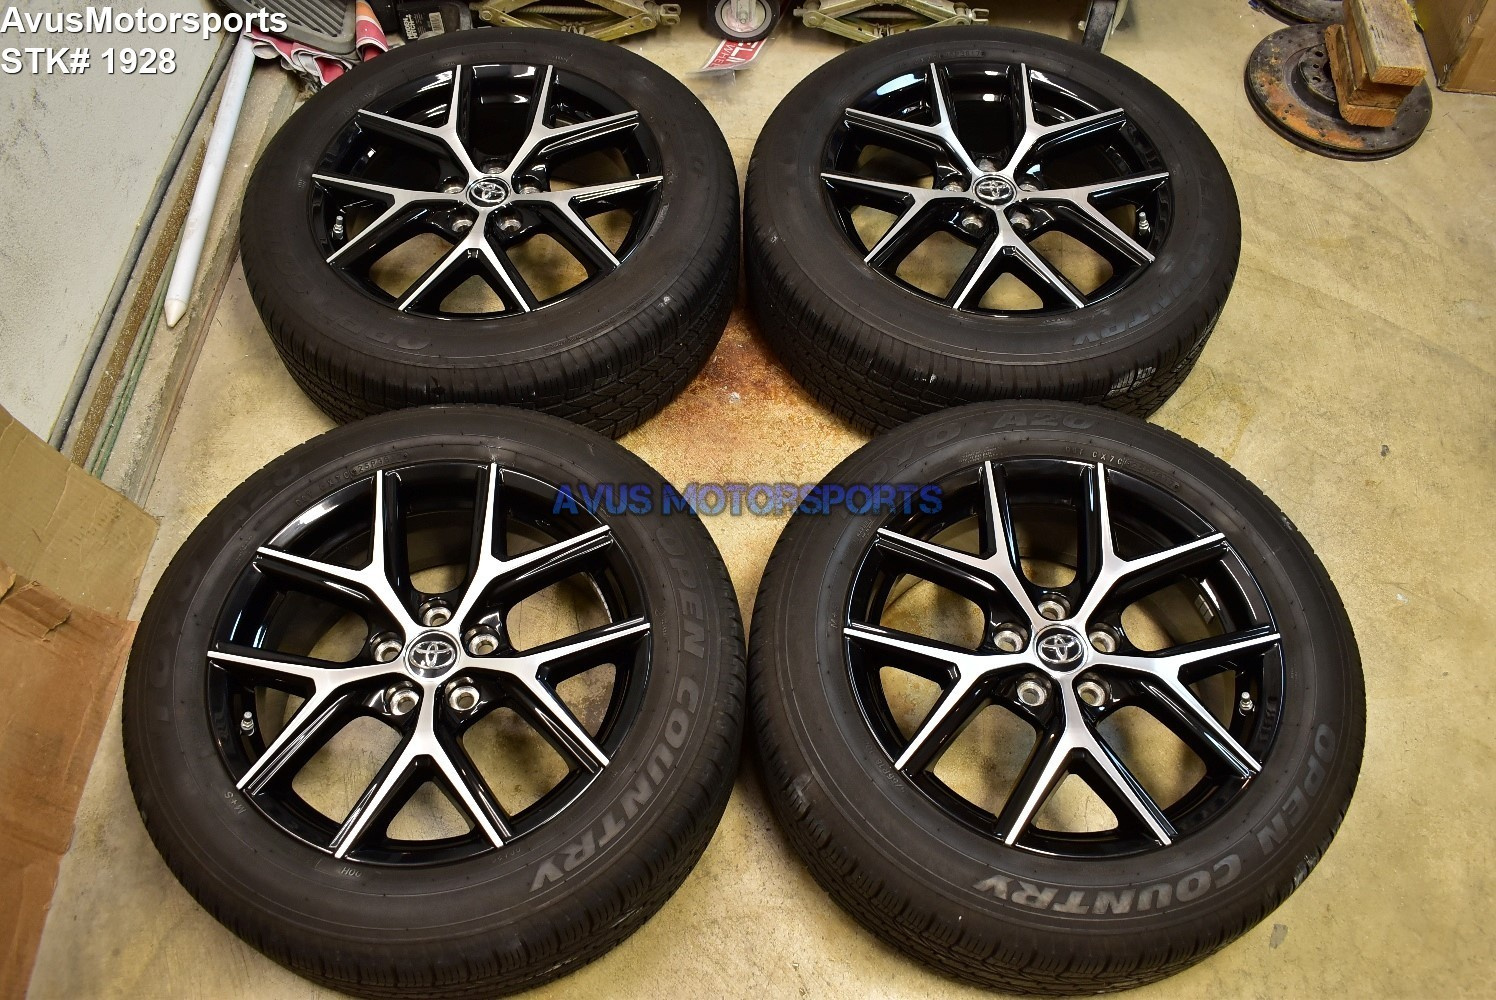 "2018 Toyota Rav4 SE OEM 18"" Factory Wheels and Tires 235/55r18 + TPMS"